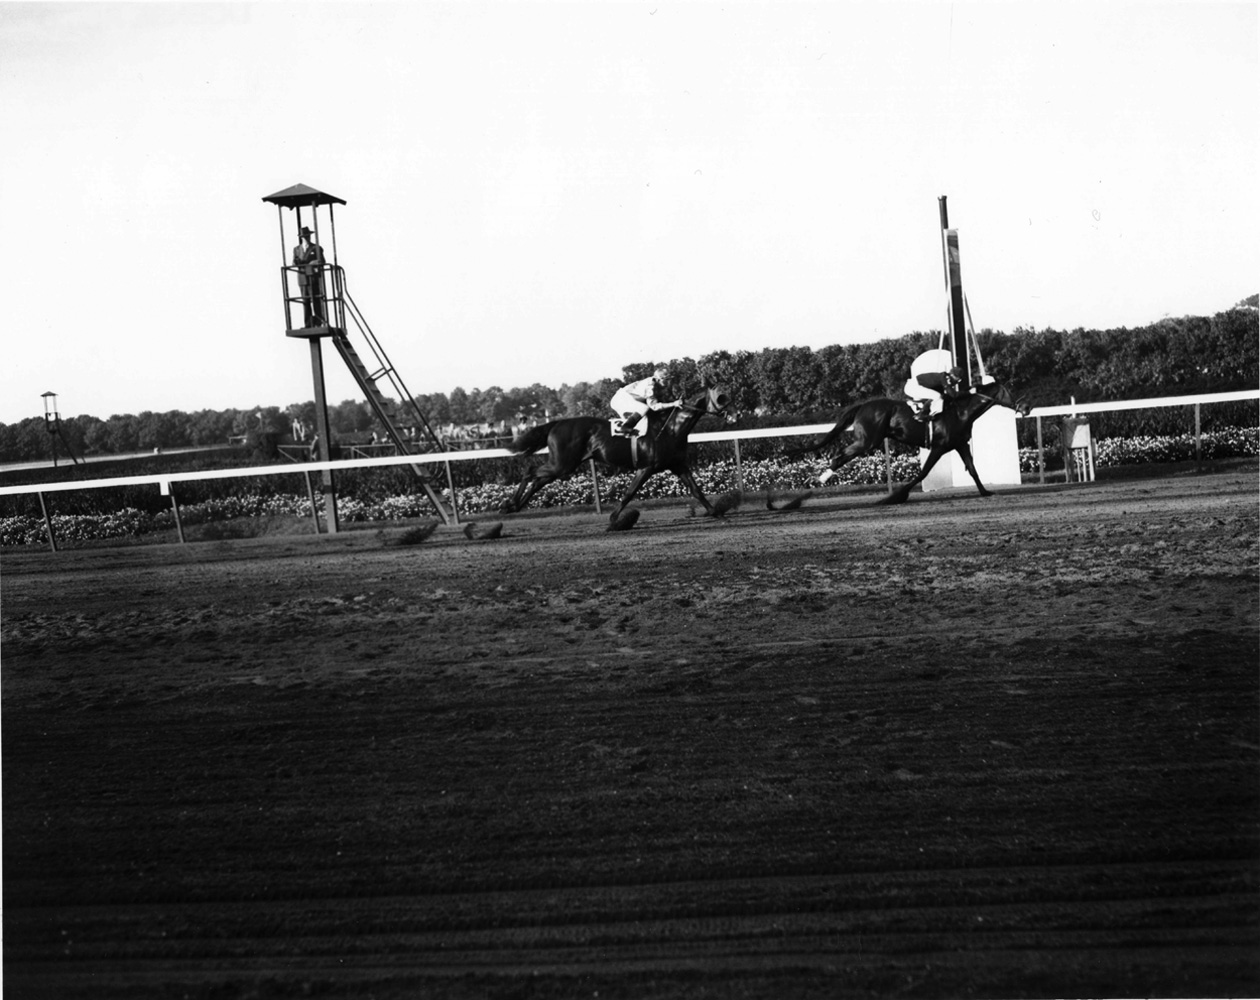 Armed (Al Snider up) winning the 1947 Sysonby Mile at Belmont Park (Keeneland Library Morgan Collection/Museum Collection)